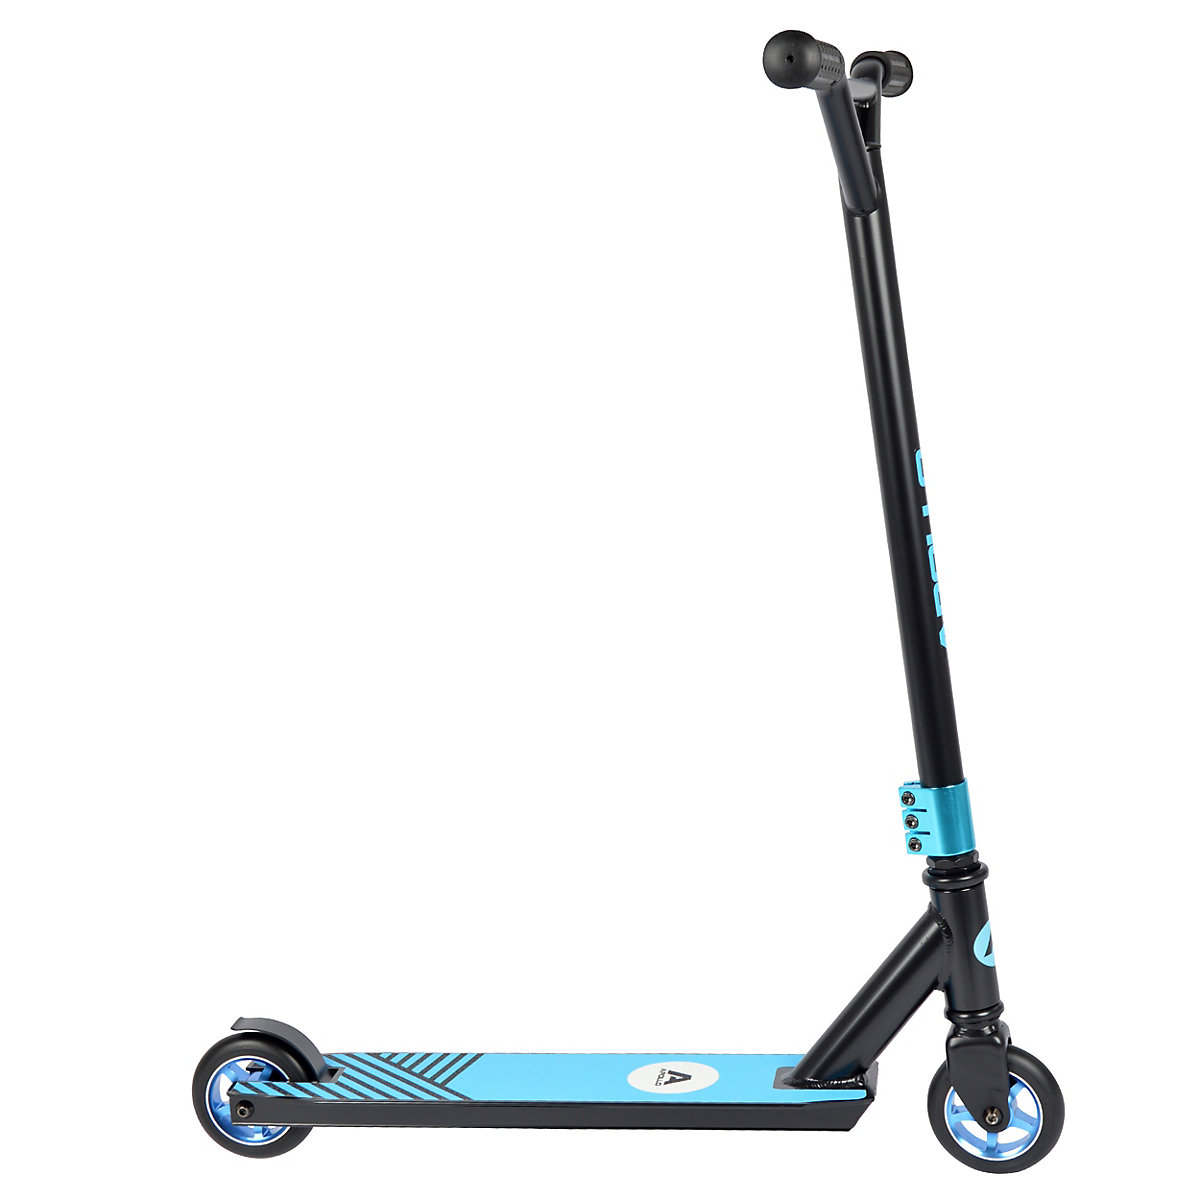 Apollo Stunt Scooter Genius Pro